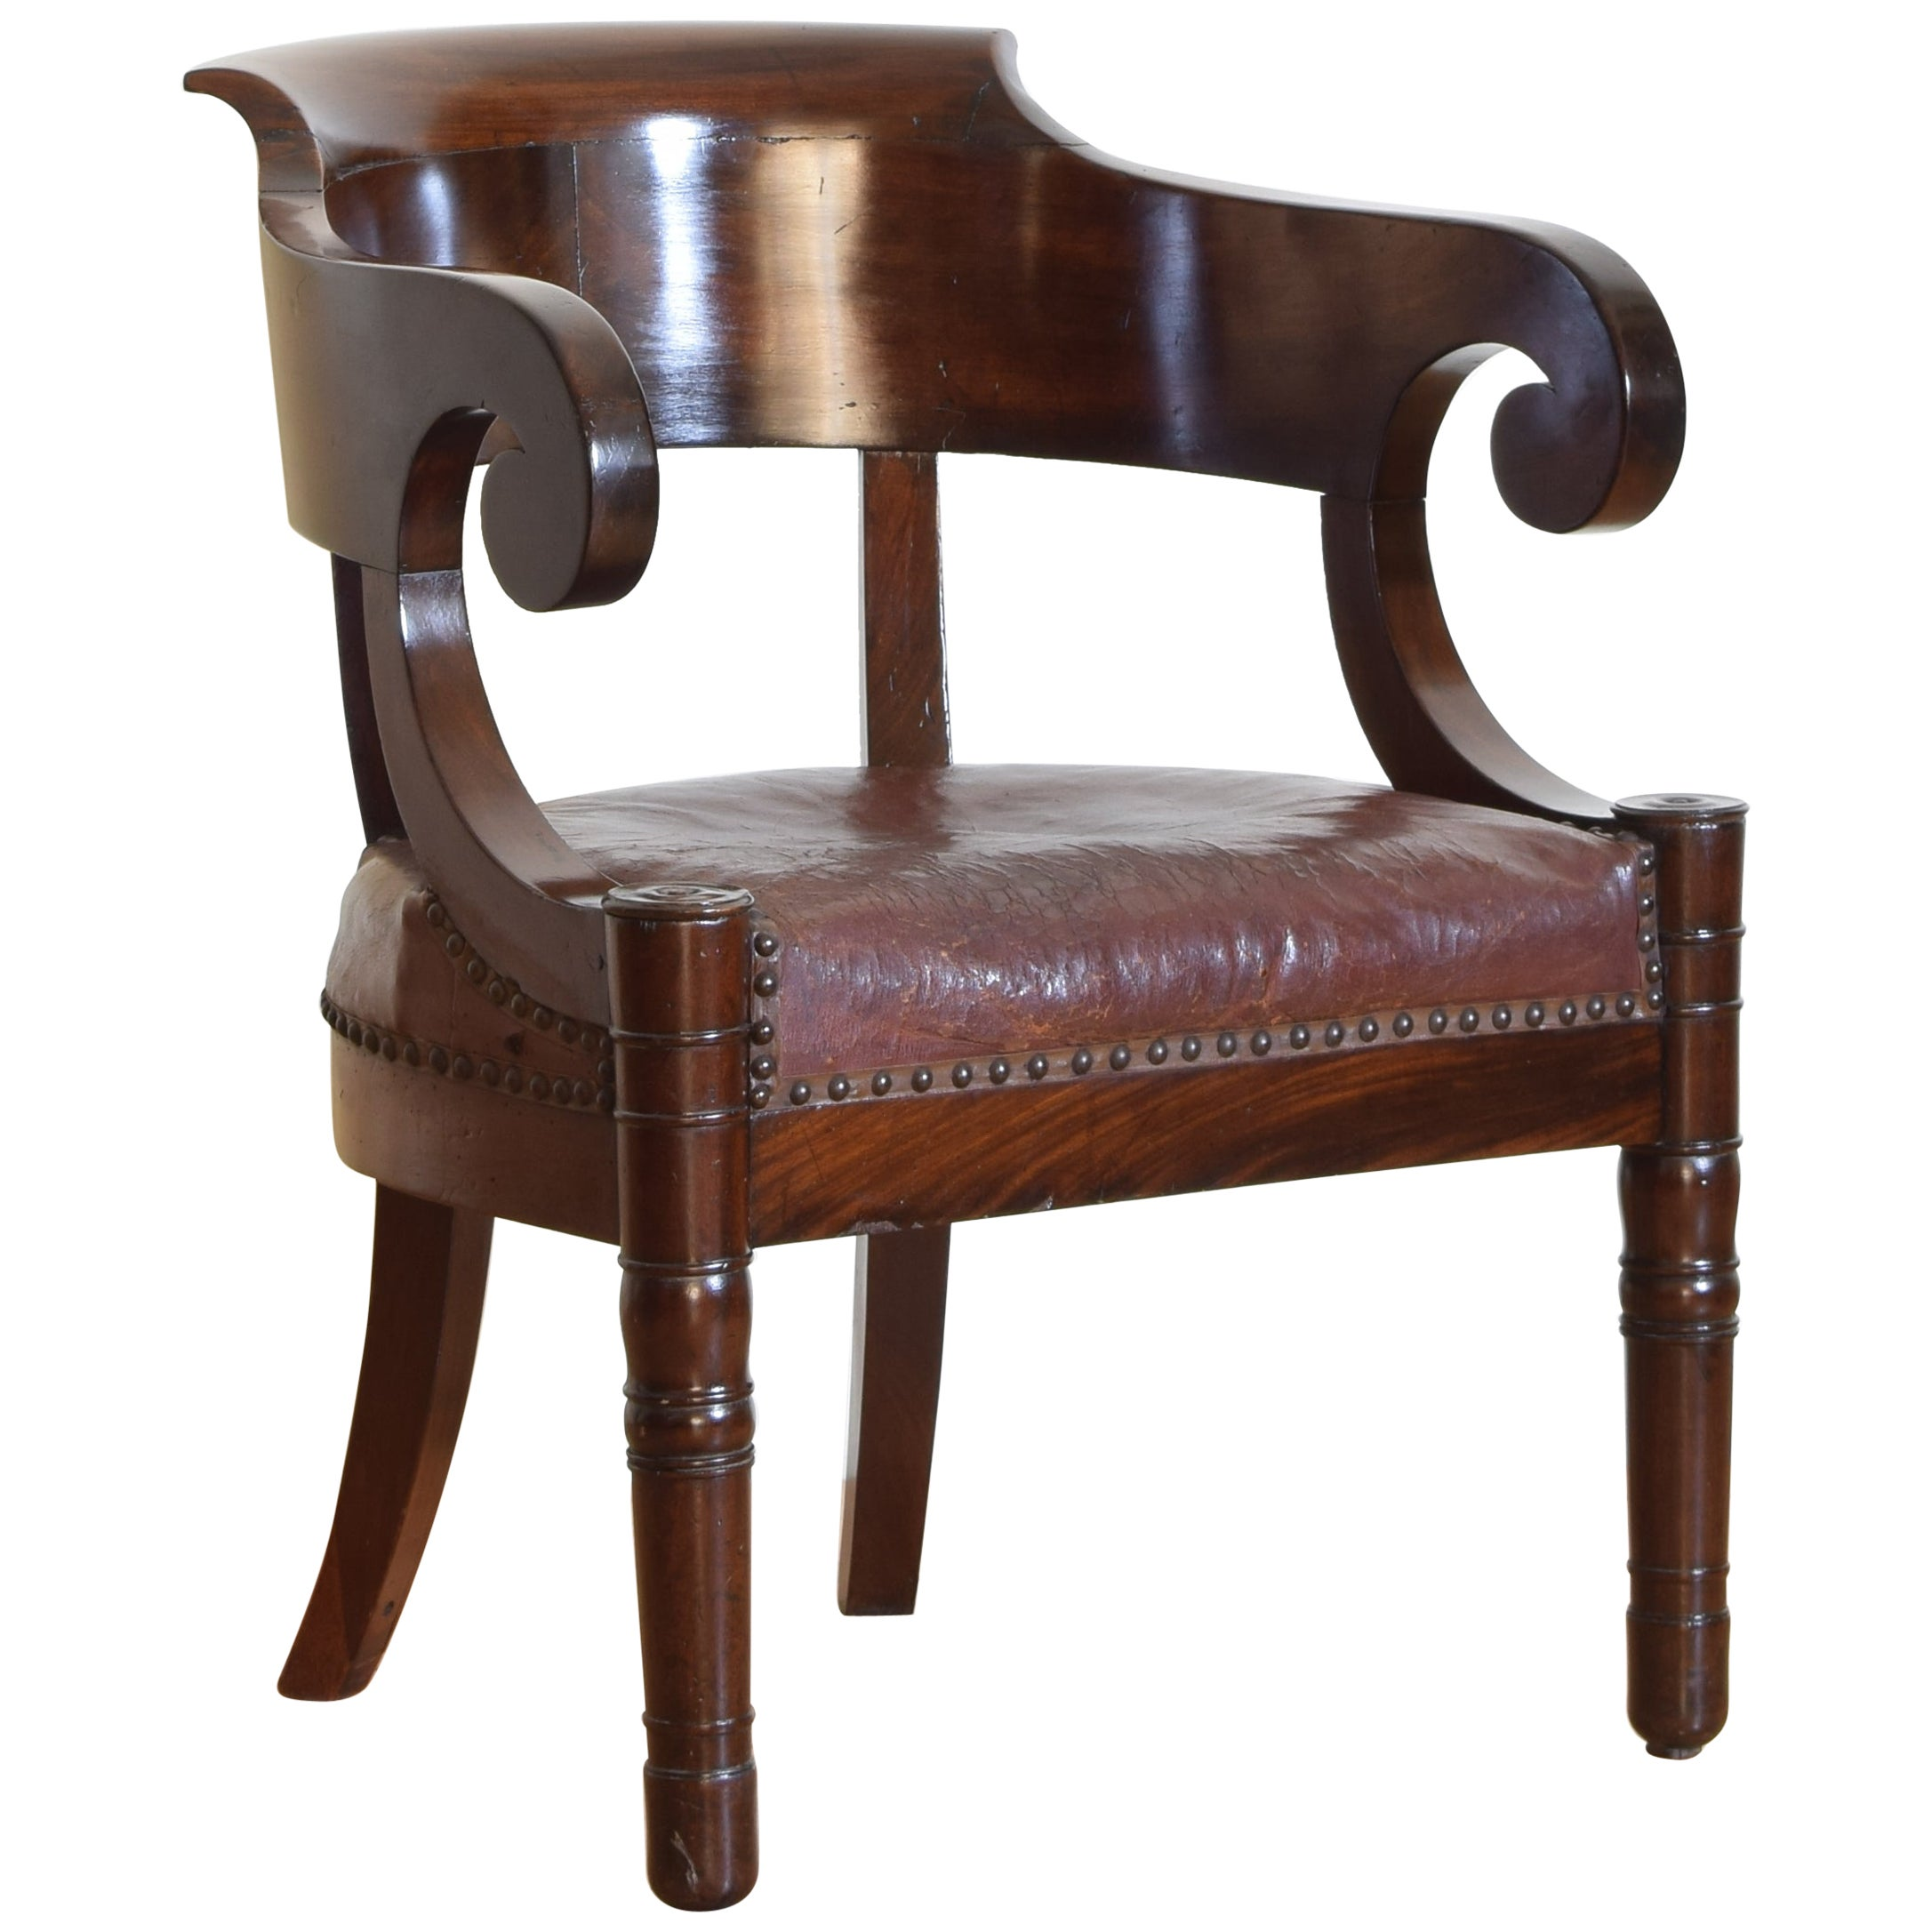 Italian Empire Period Mahogany Leather Upholstered Desk Chair